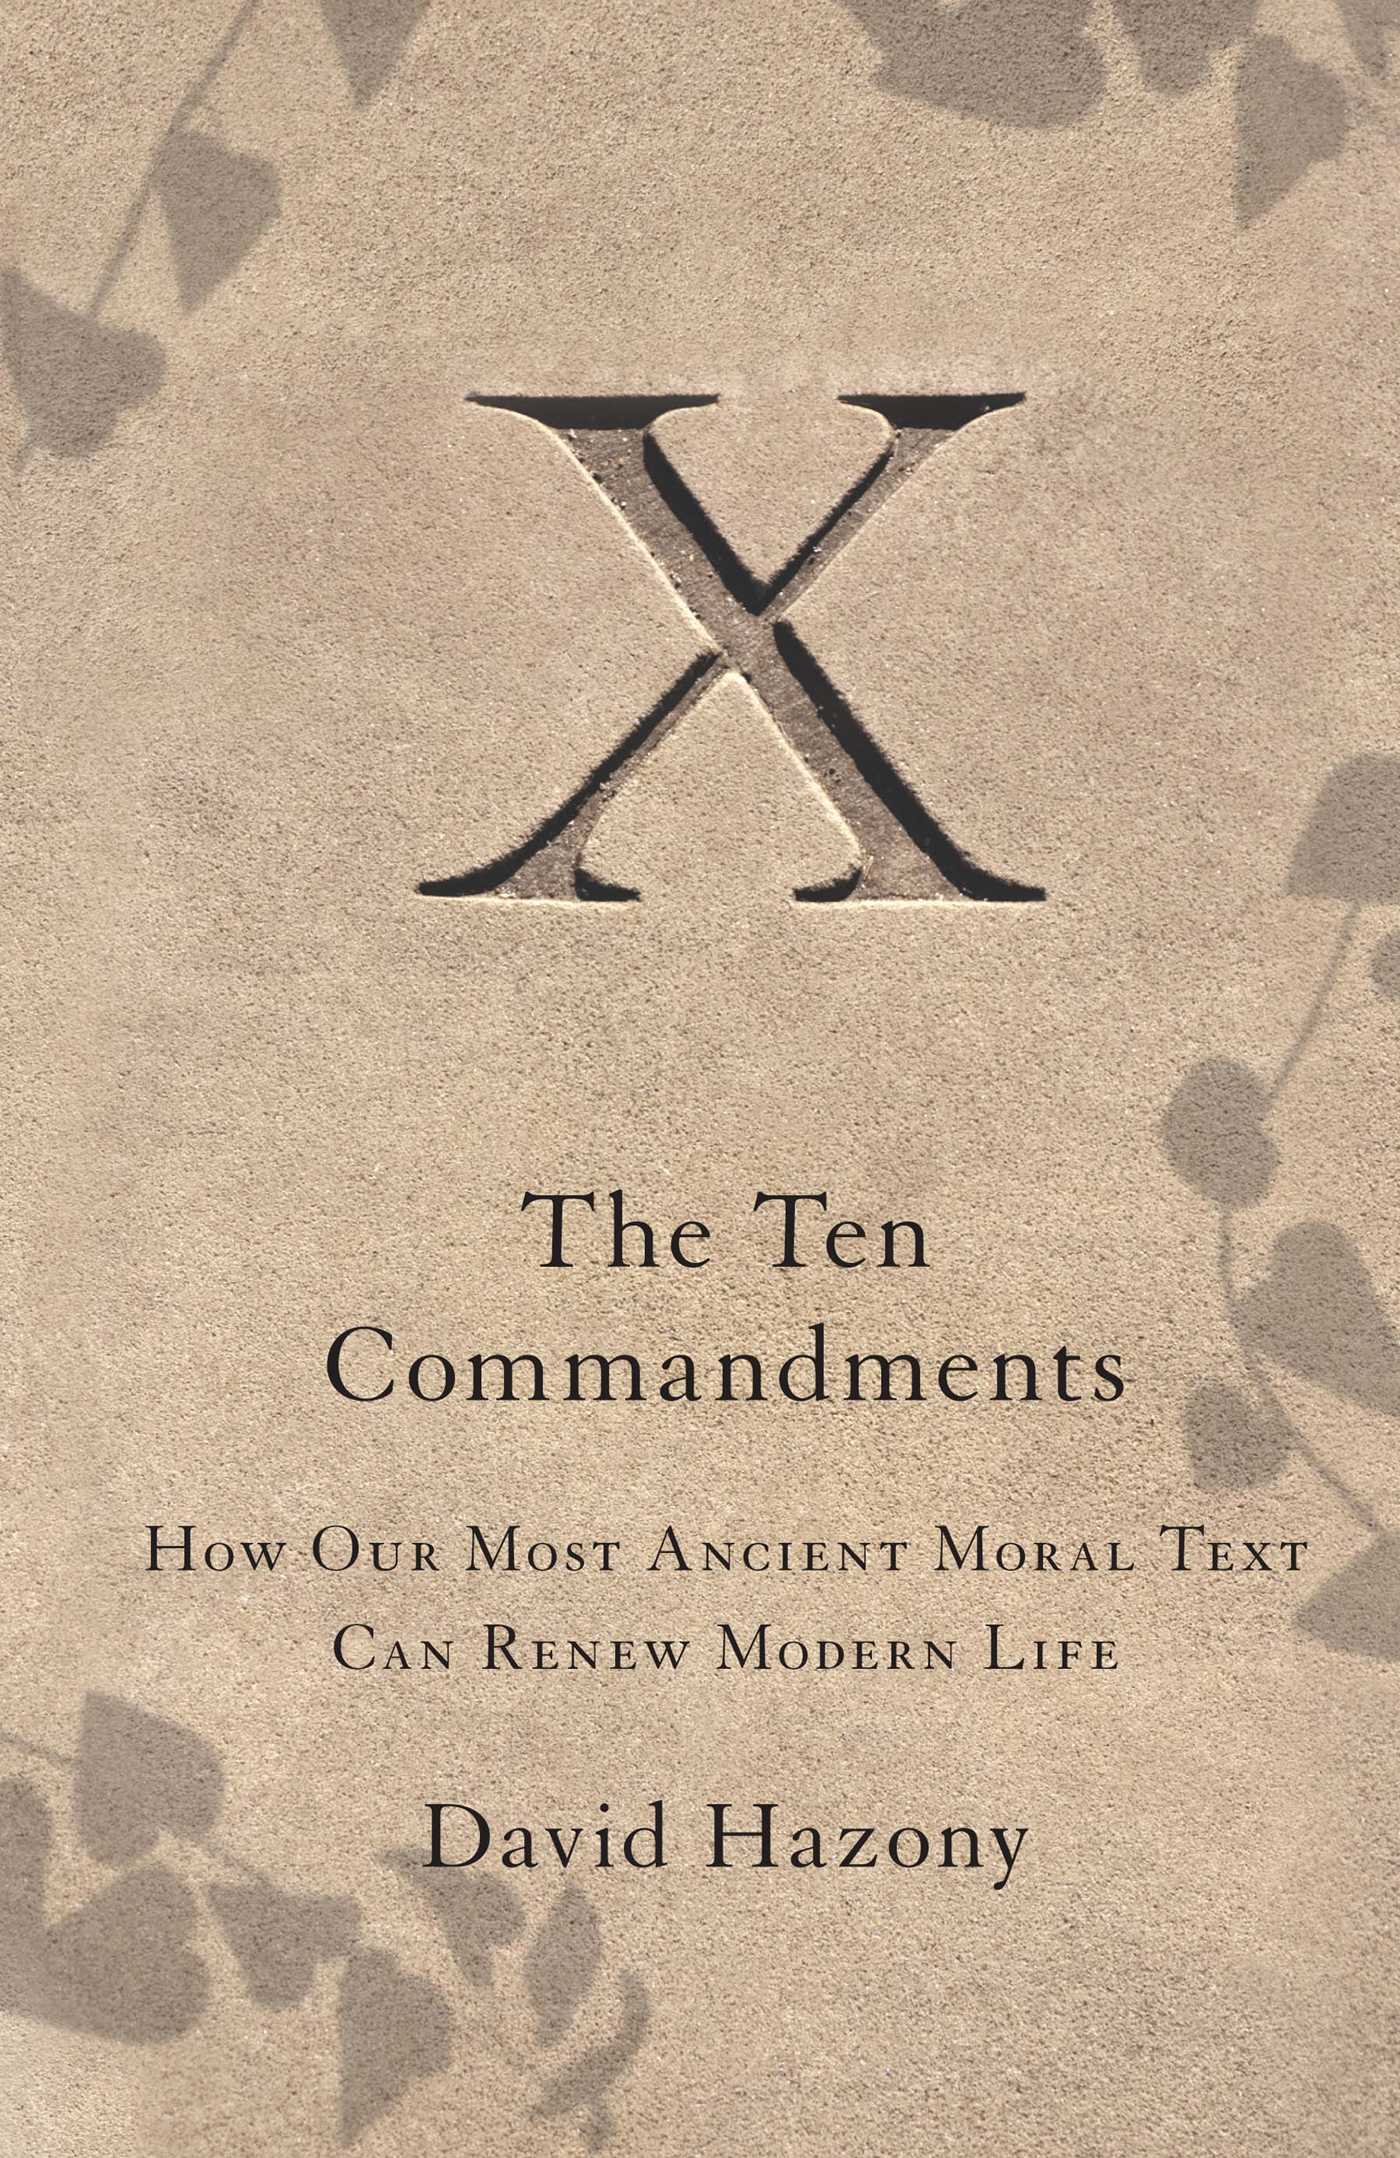 Ten-commandments-9781416562405_hr